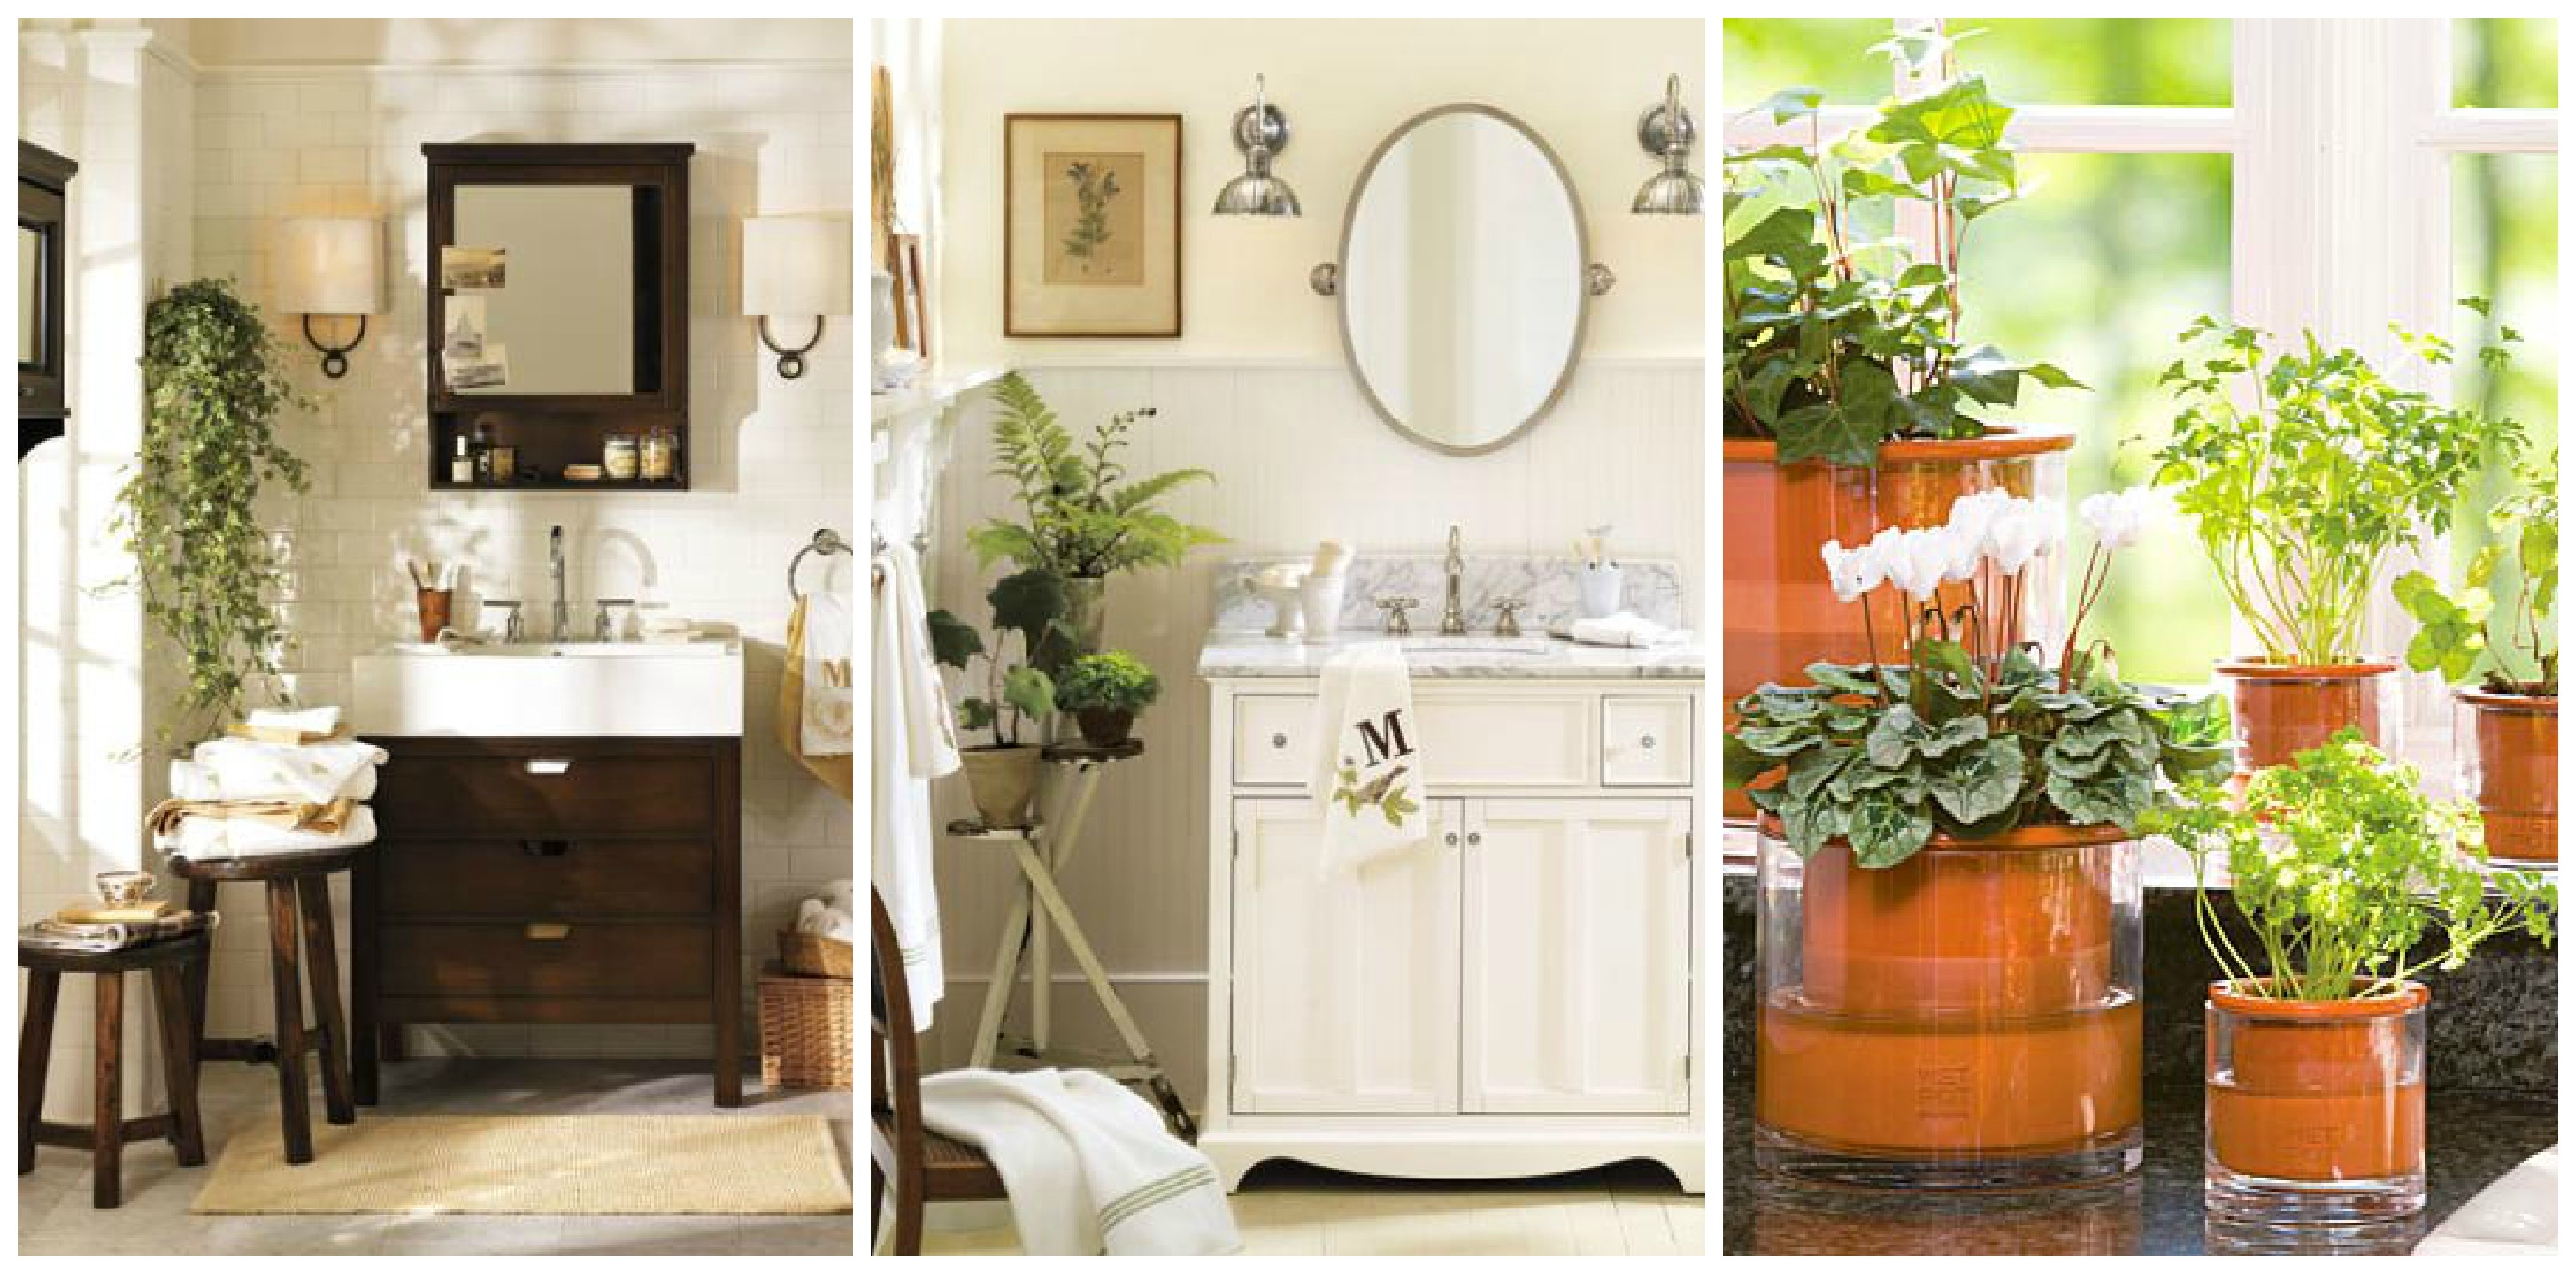 Bathroom Decor Ideas Add Greenery